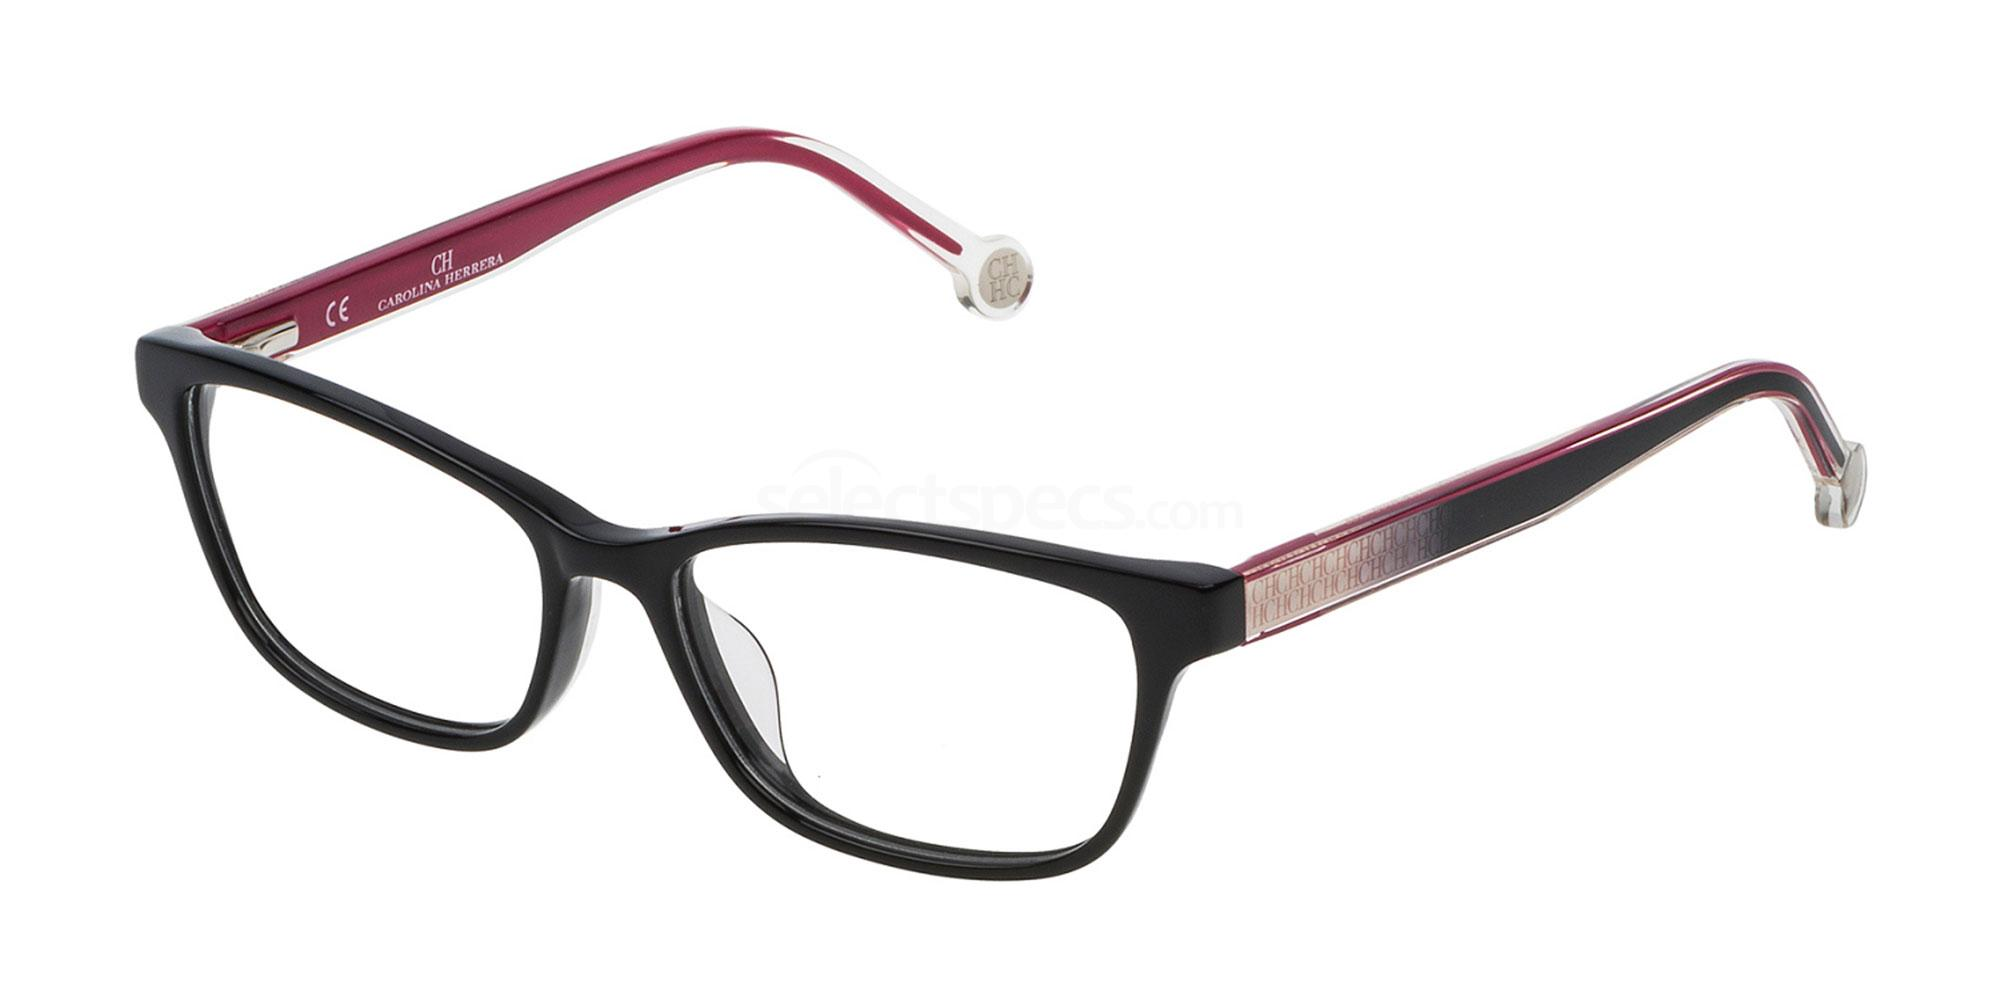 0700 VHE725L Glasses, CH Carolina Herrera